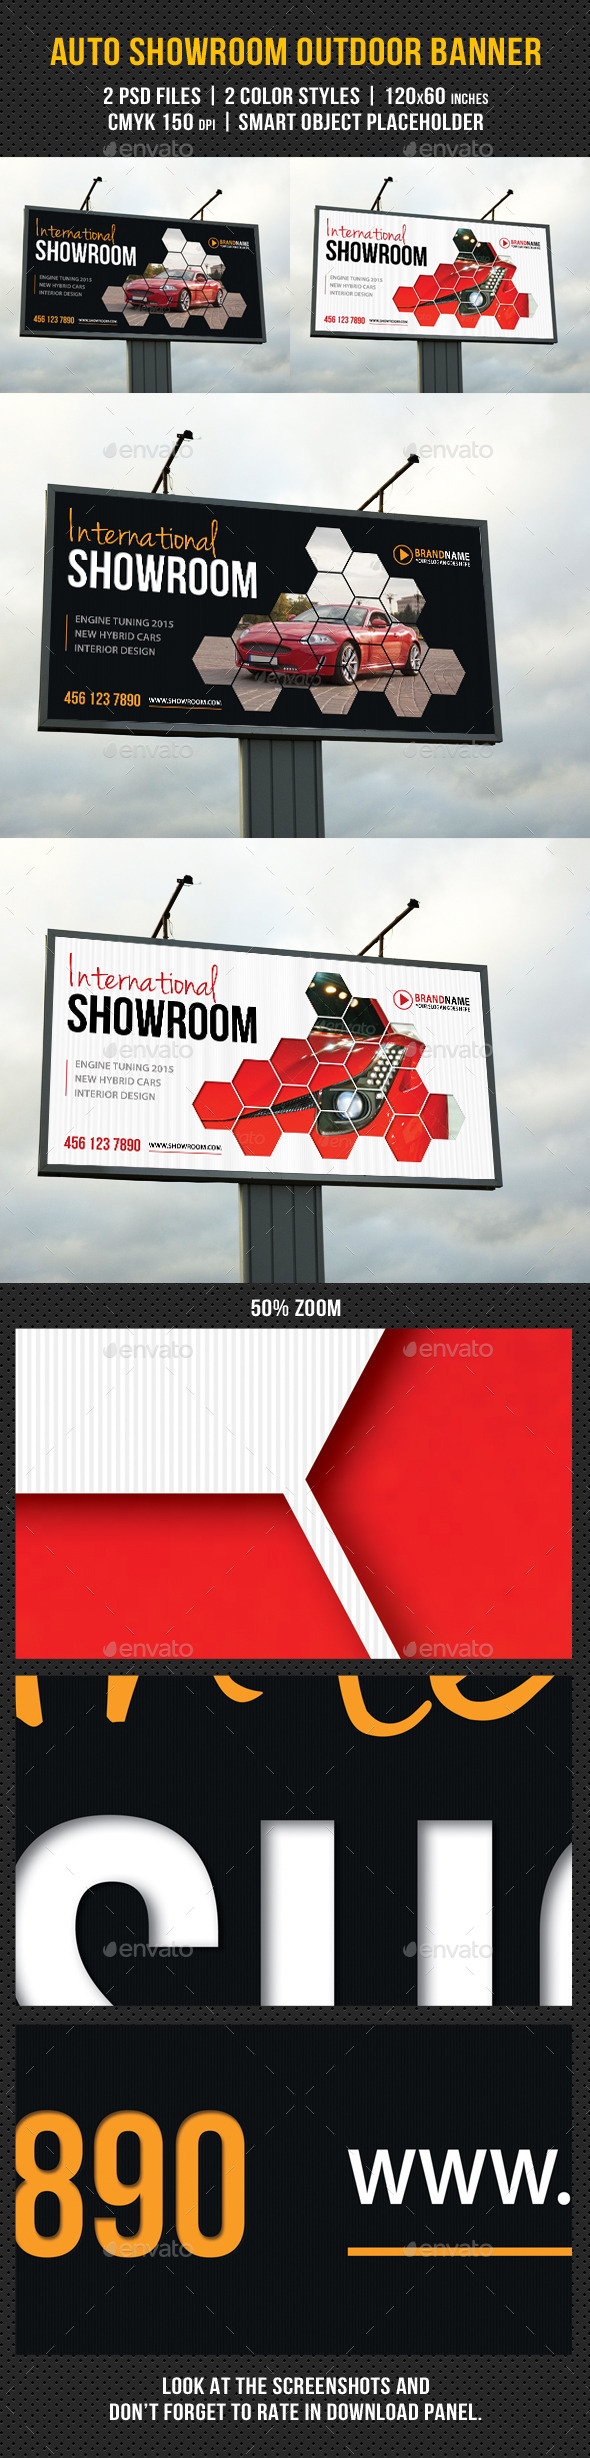 Auto Showroom Outdoor Banner 03 - Signage Print Templates